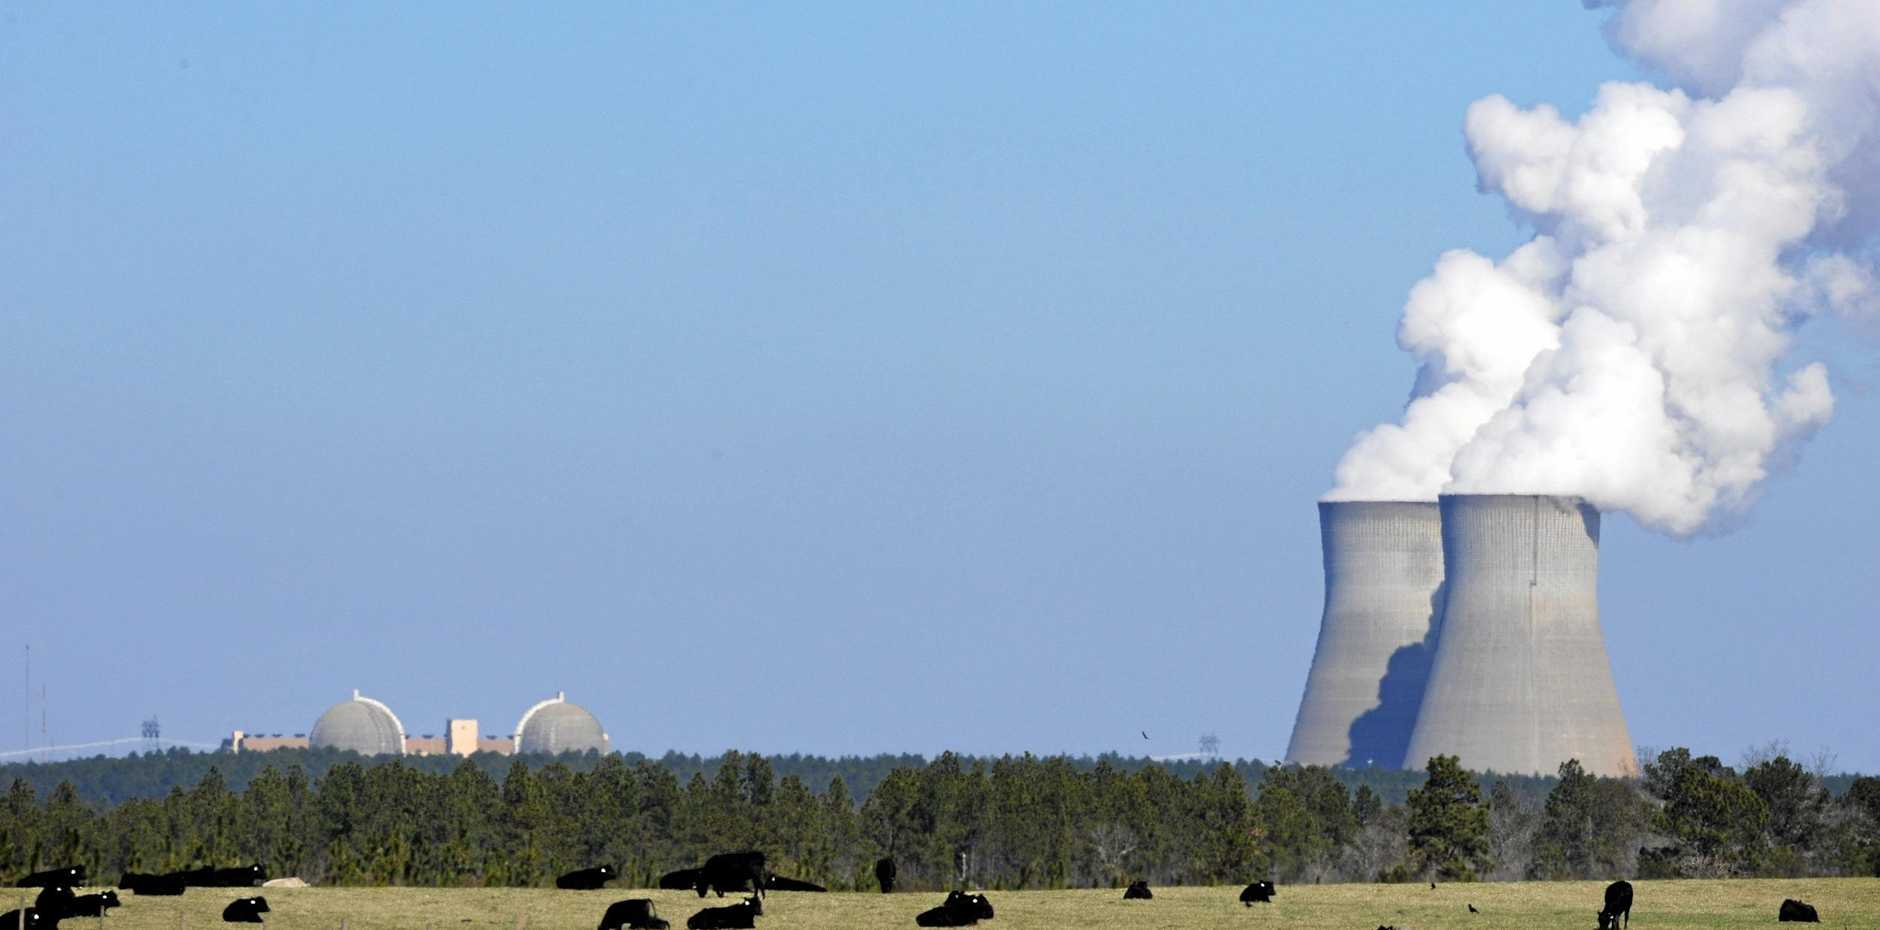 Richmond MP Justine Elliot has called on the government to rule out a nuclear power station for Northern NSW.